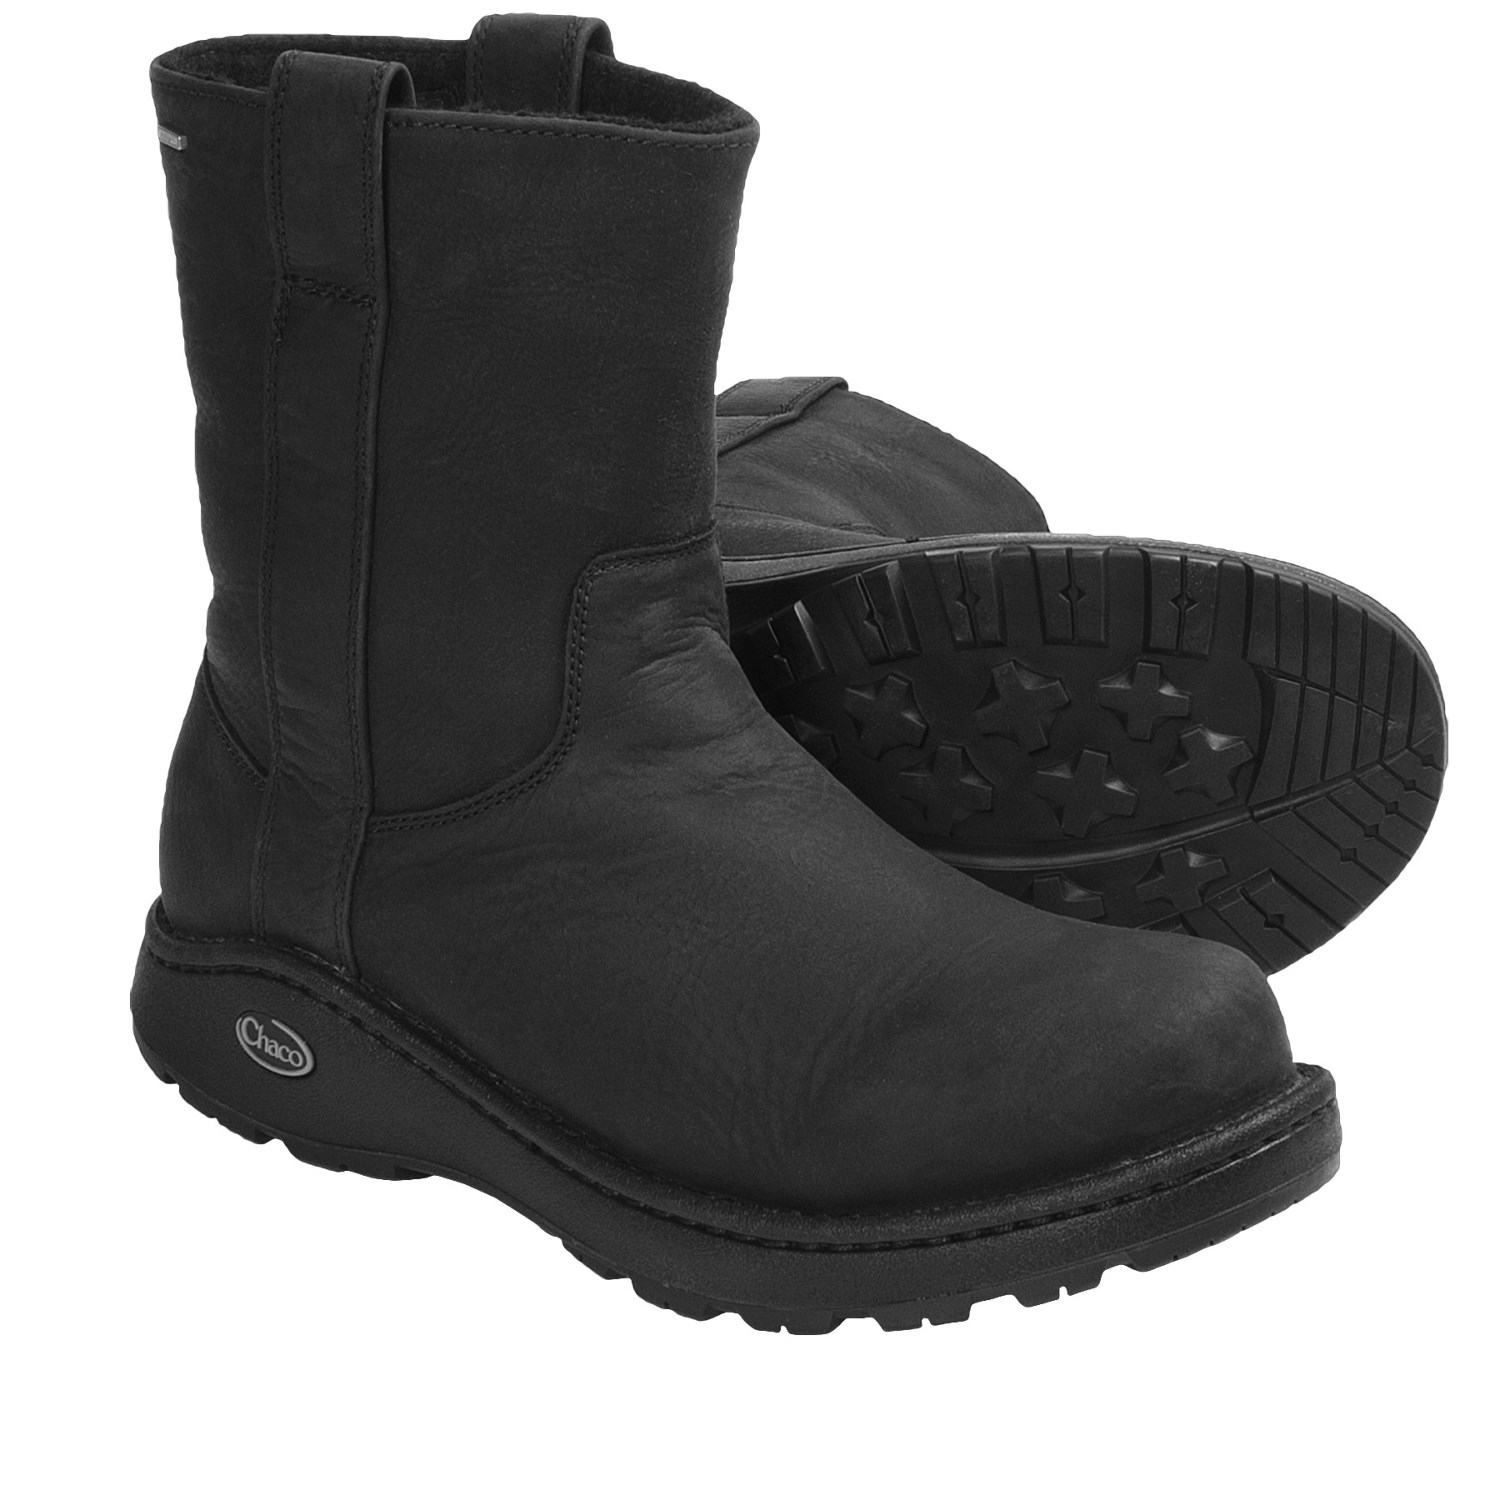 Mens 14 Wide Snow Boots | Santa Barbara Institute for